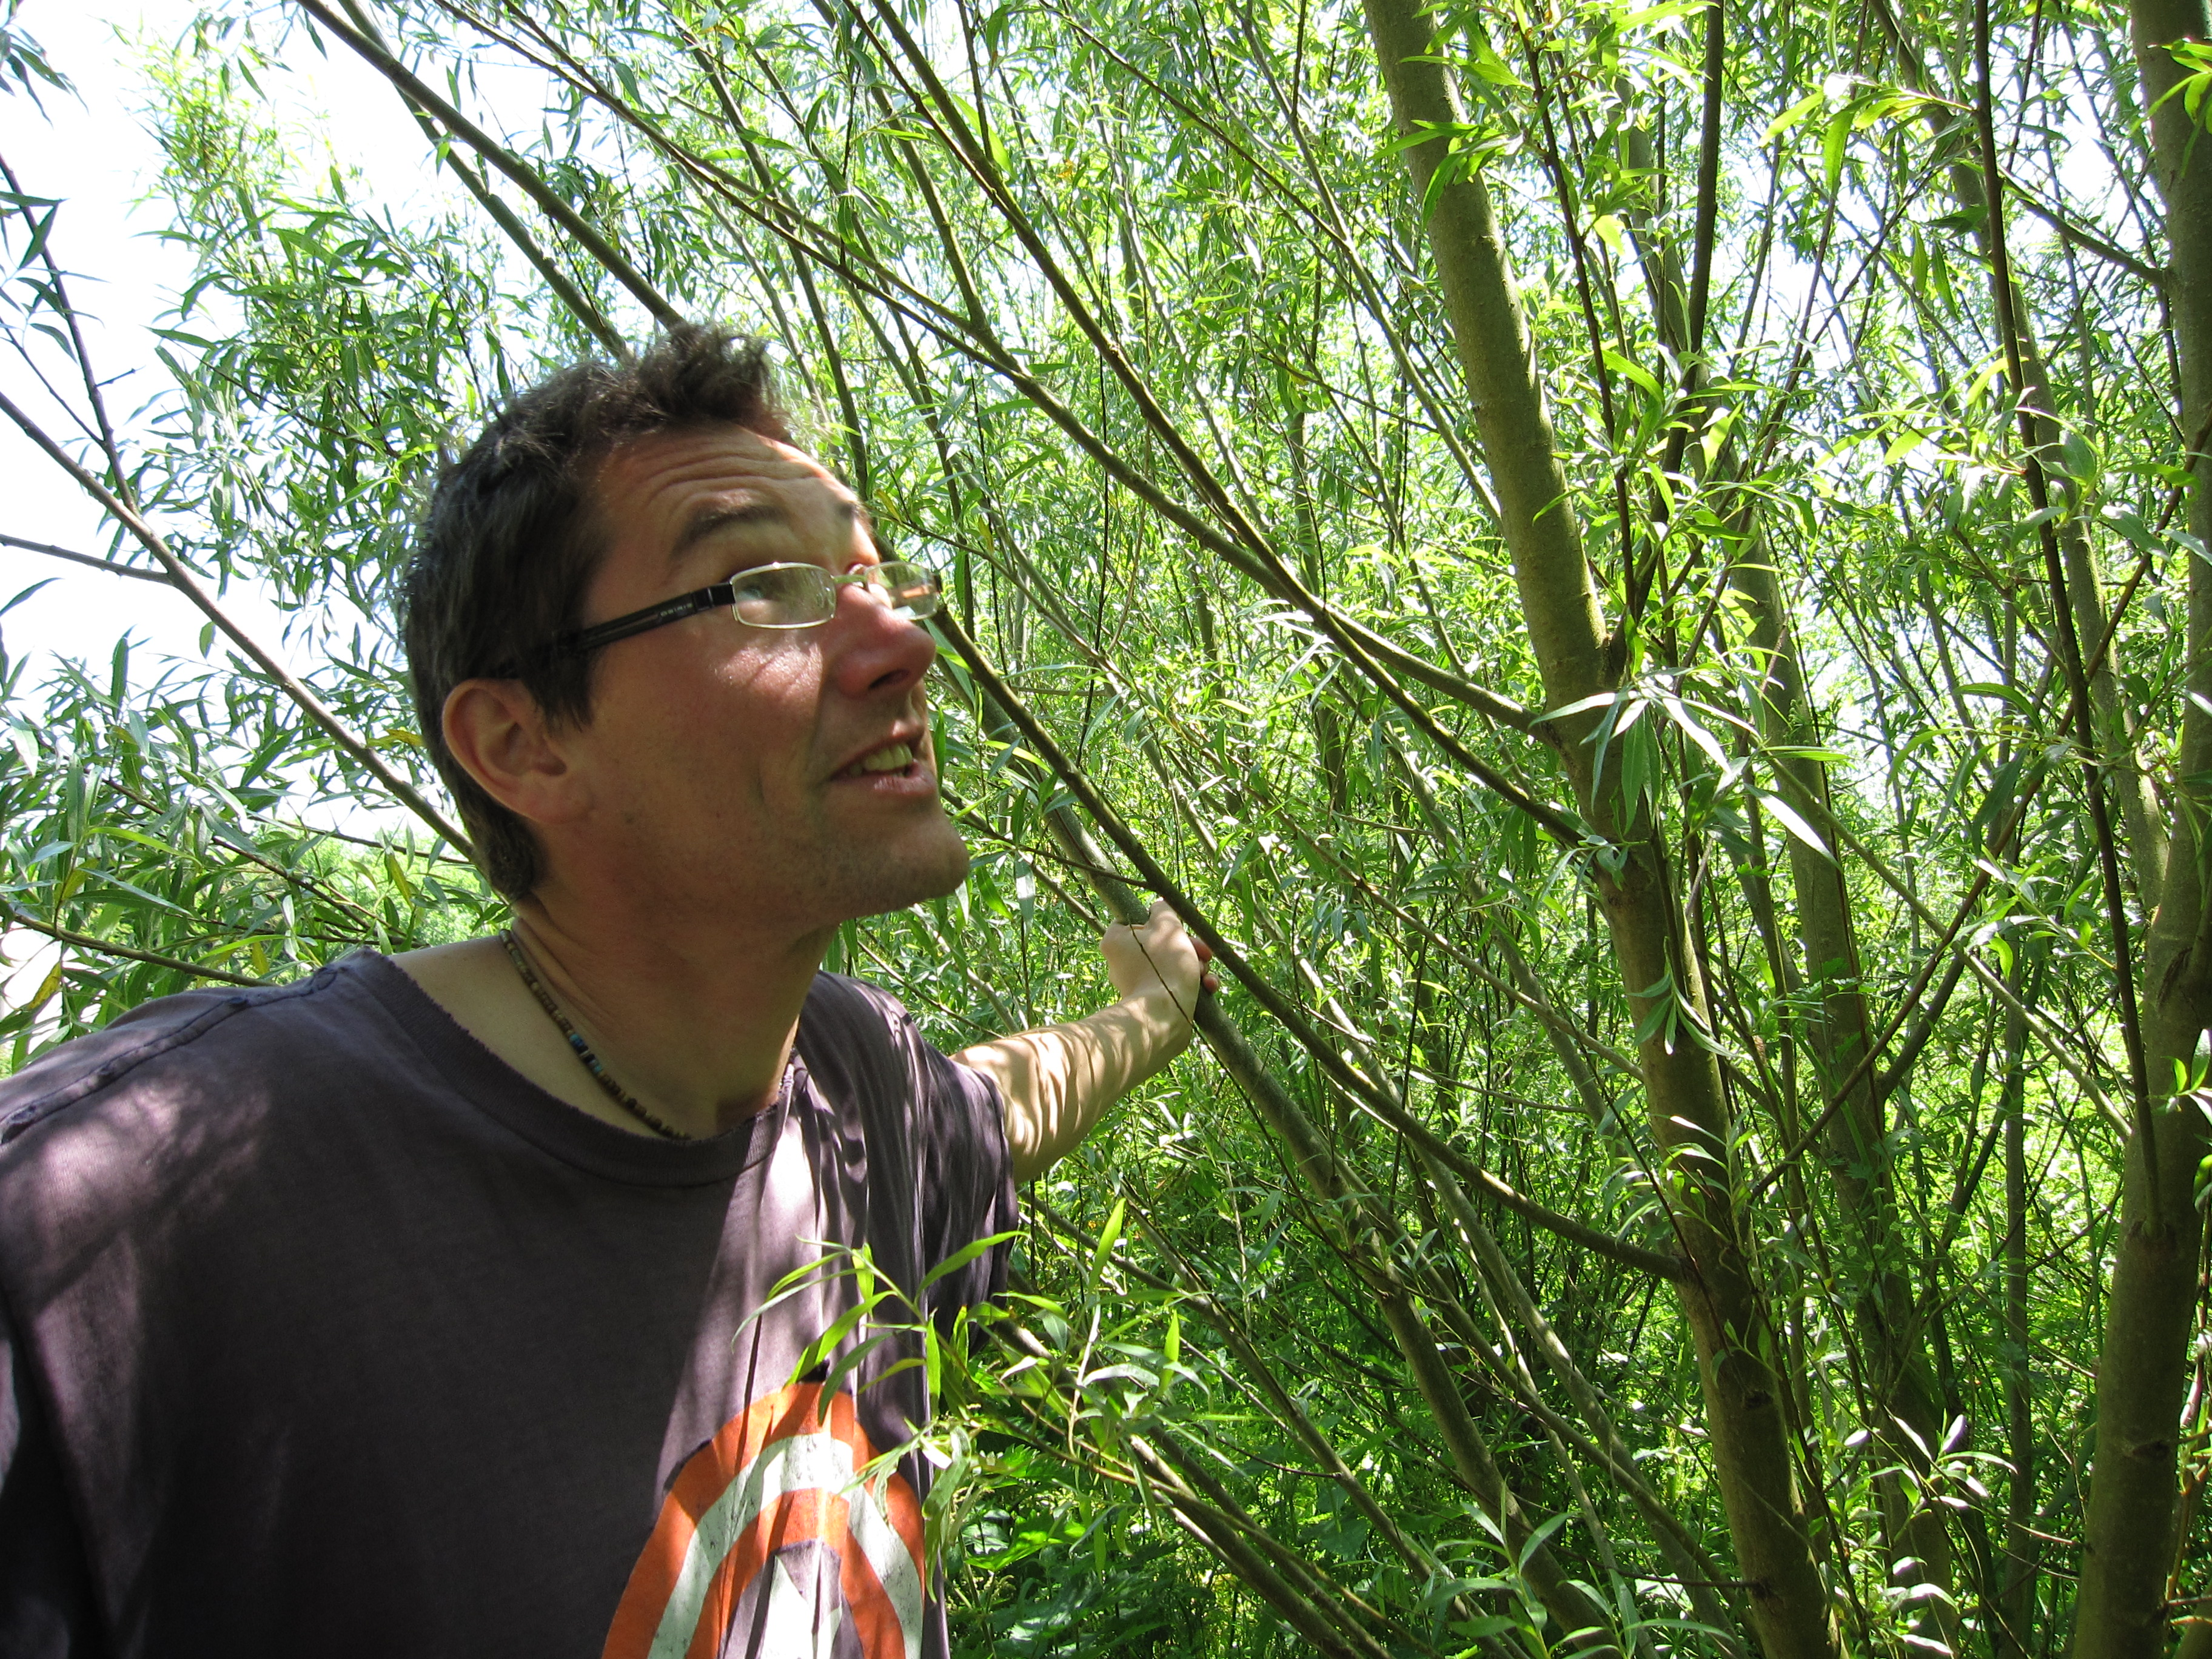 Day 1: Looking at the willow coppice